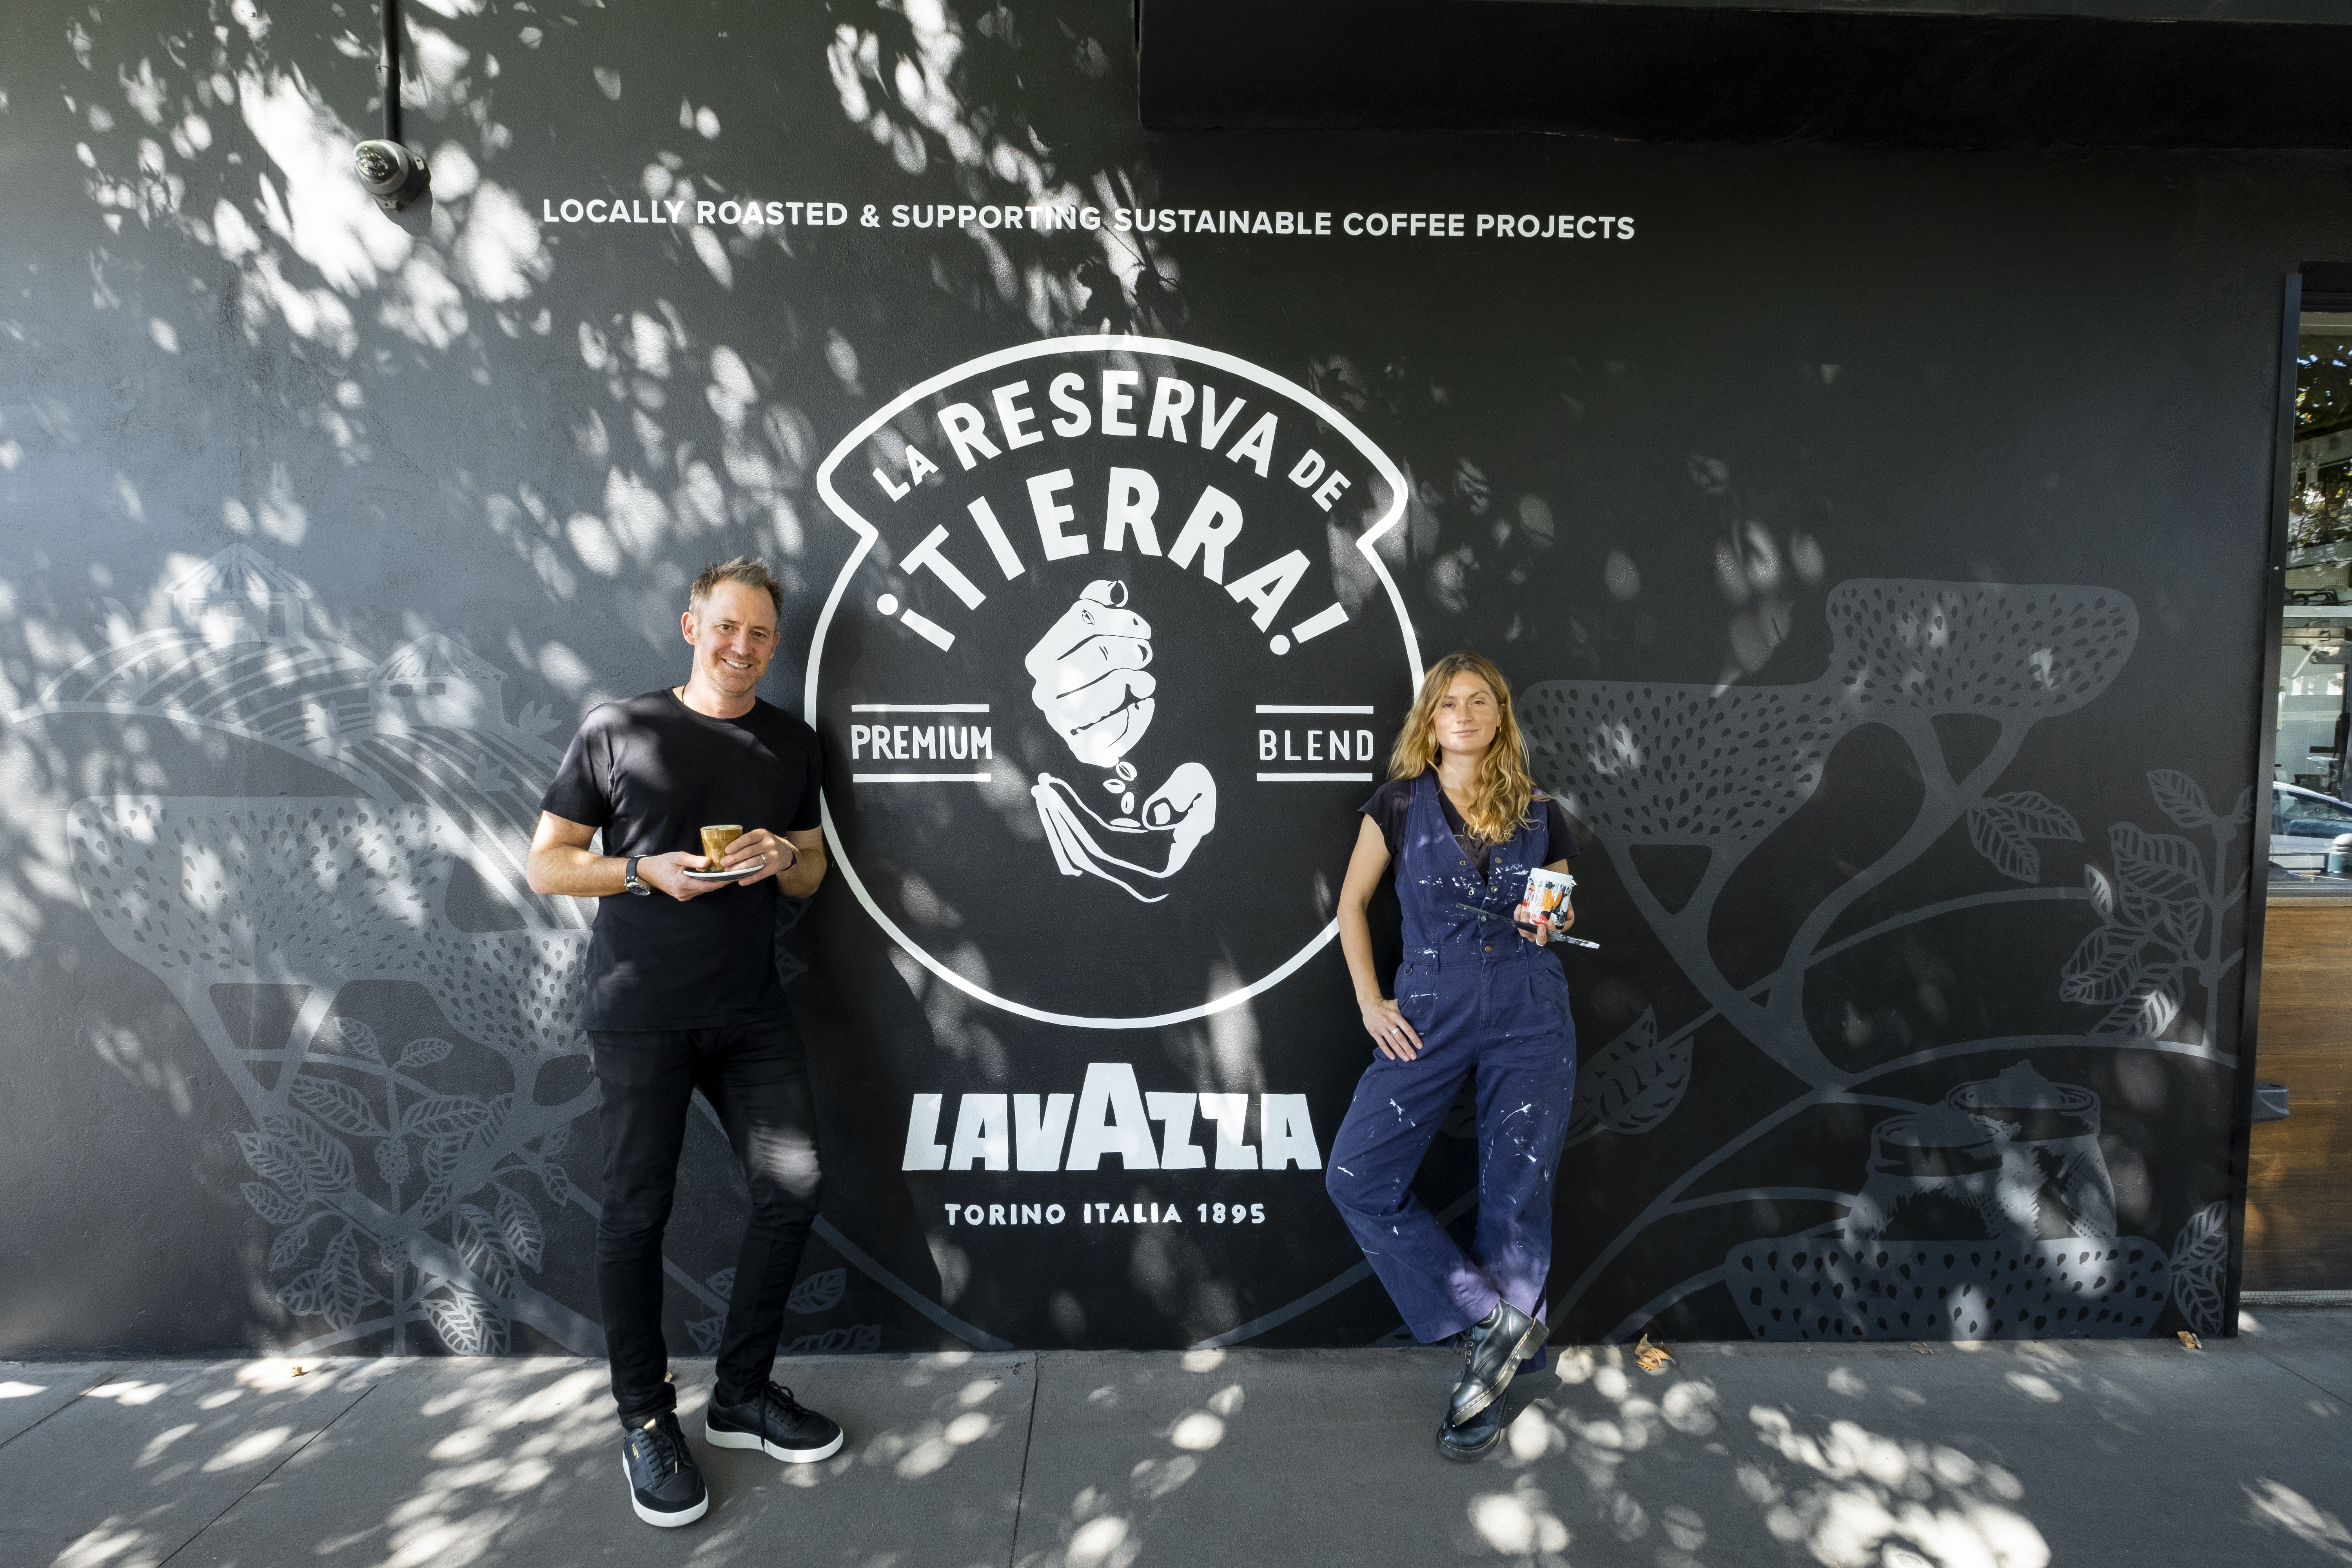 Pantry Lavazza Mural 2021